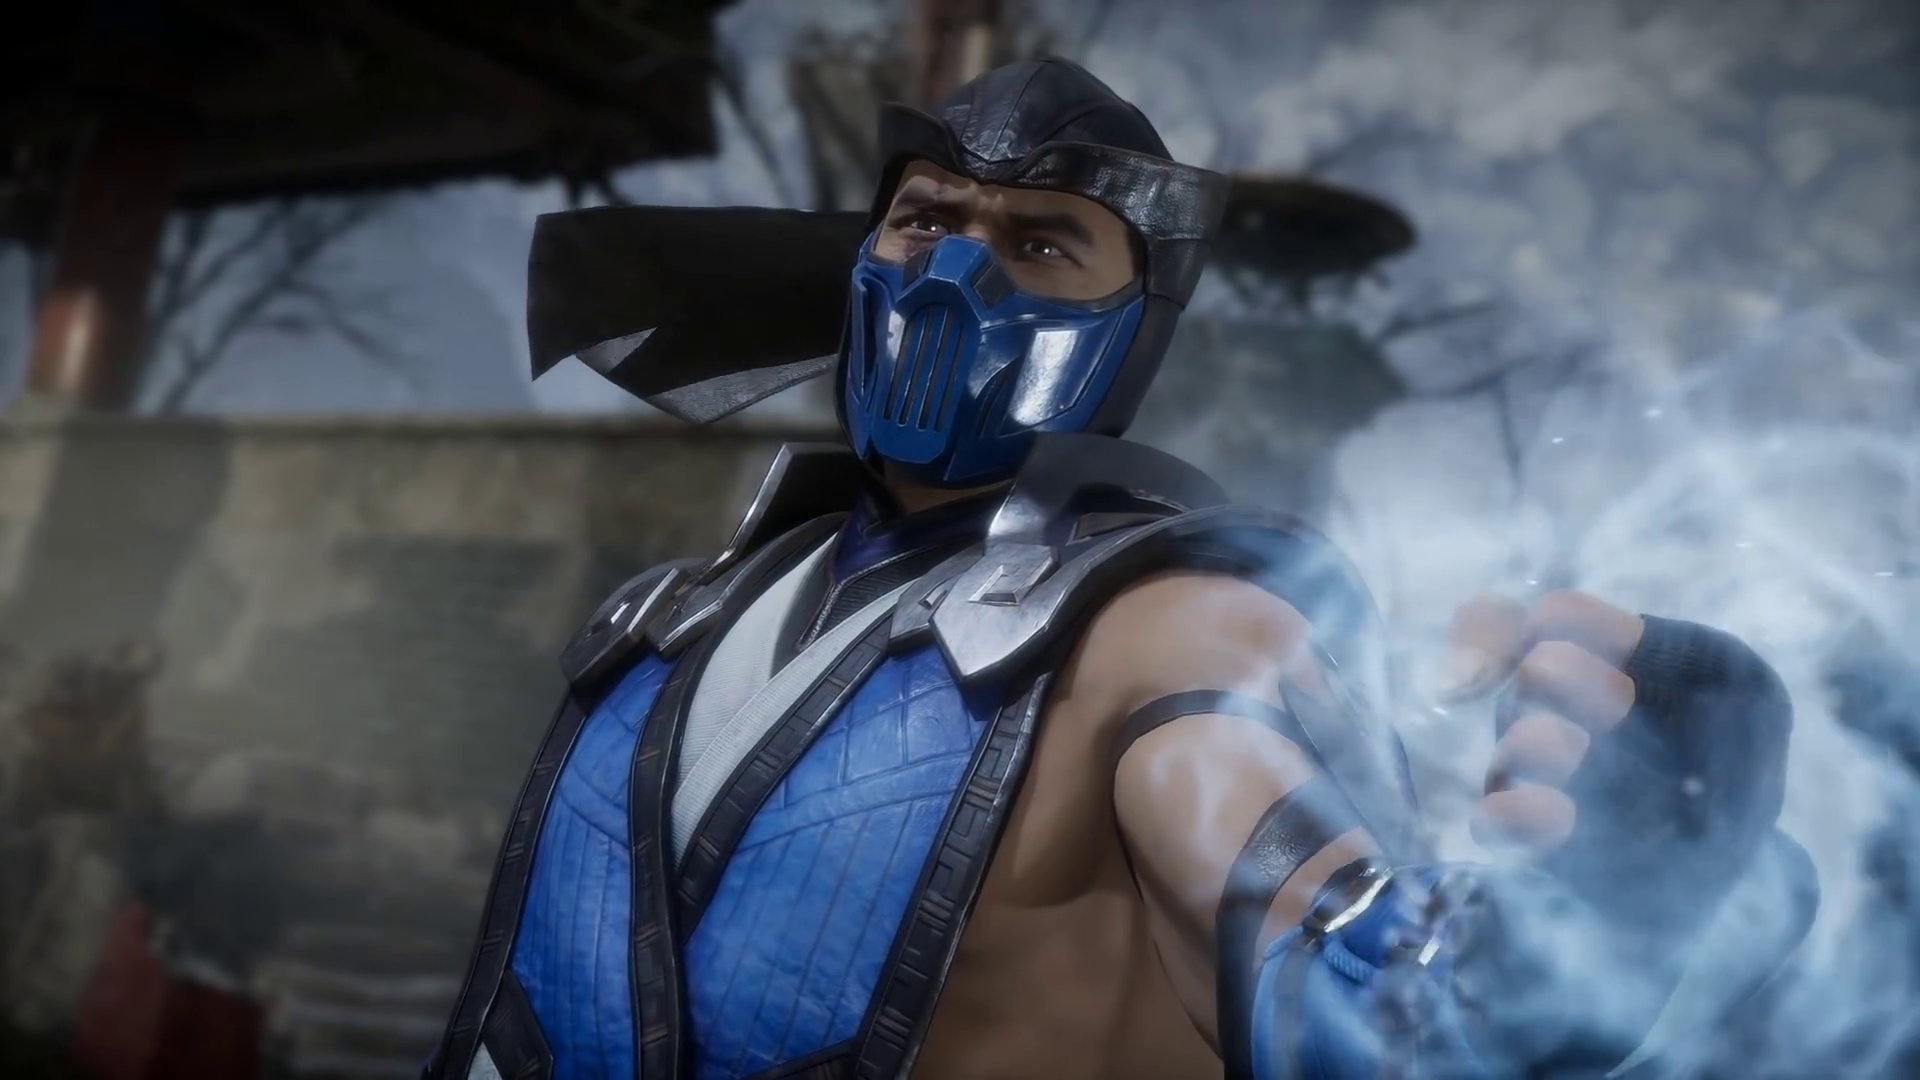 Mortal Kombat 11 Mercy How To Perform Mercy Finishing Move With